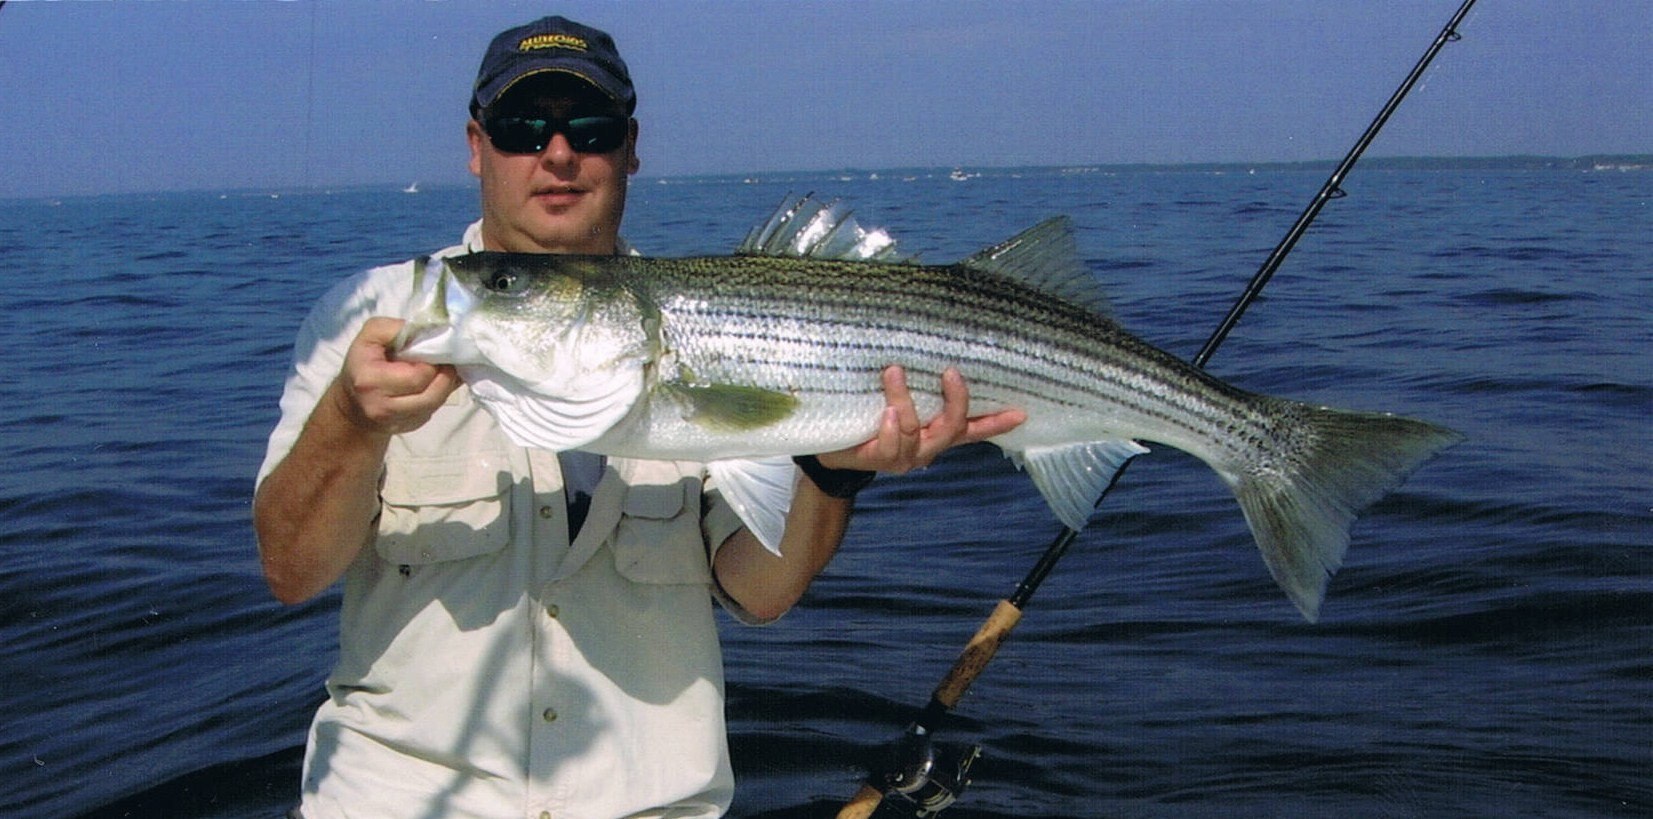 Opinion striped bass record new york